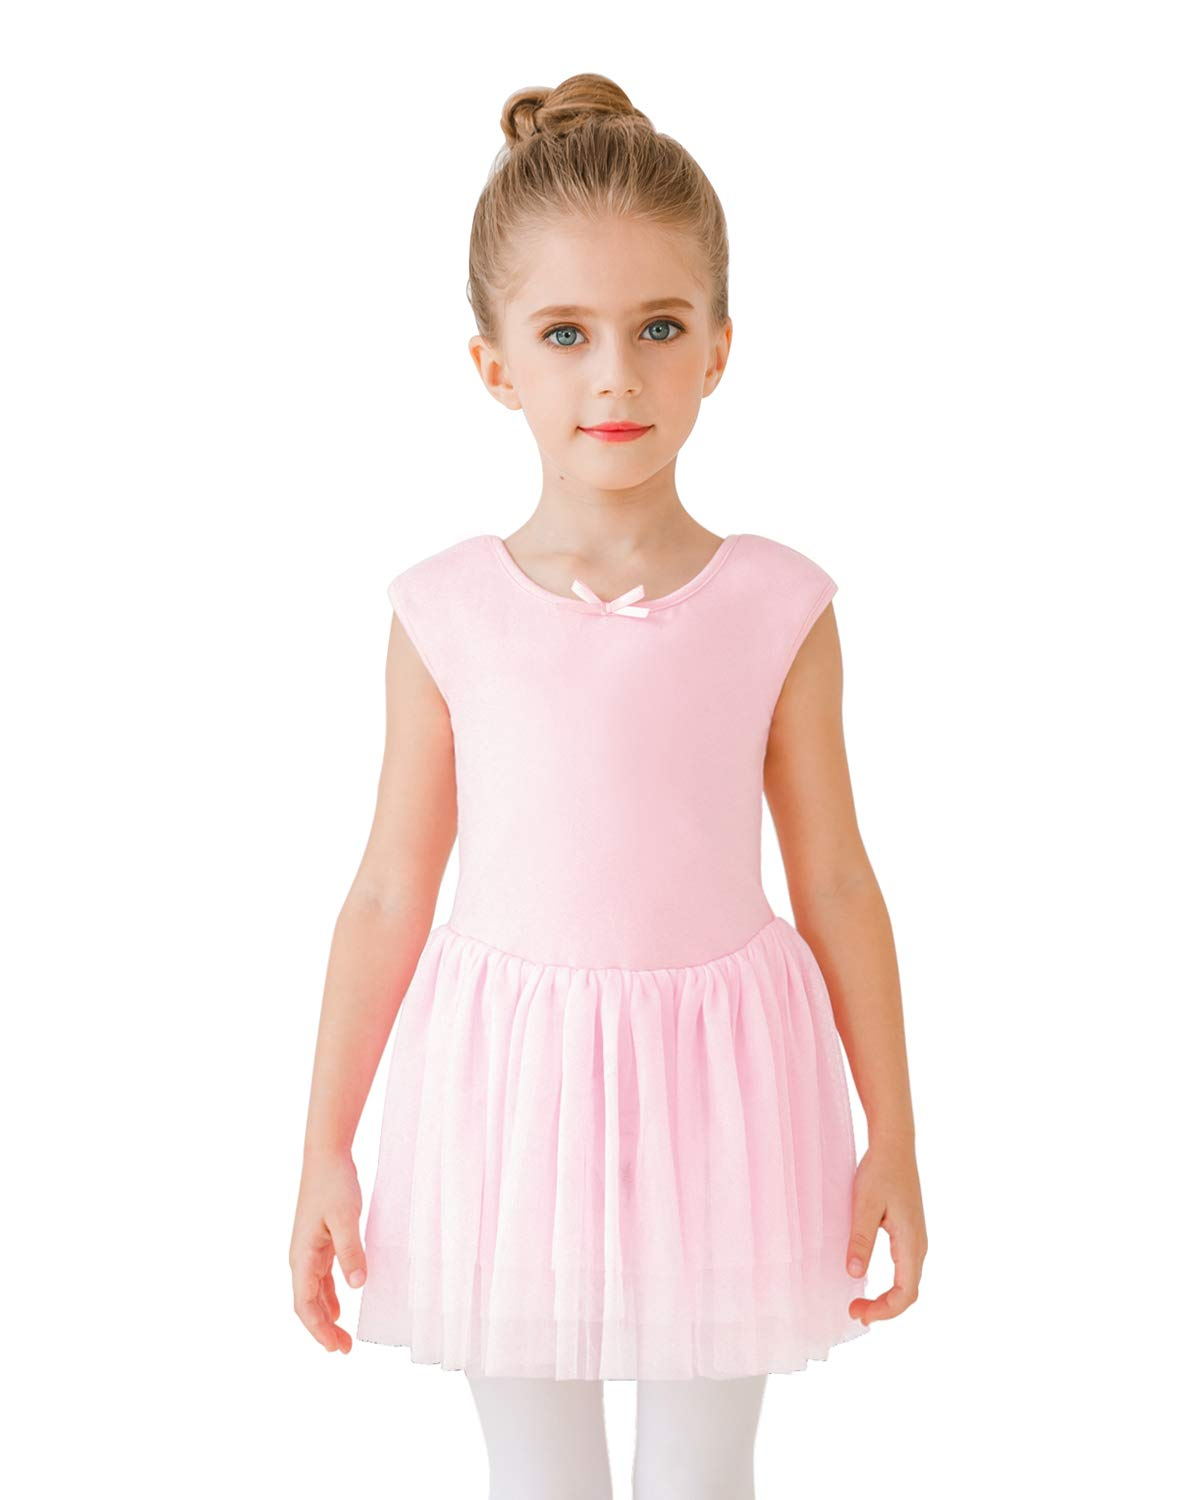 Stelle Toddlergirls Tank Tutu Dress Leotard For Dance Gymnastics And Ballet Bp Tutu 100cm